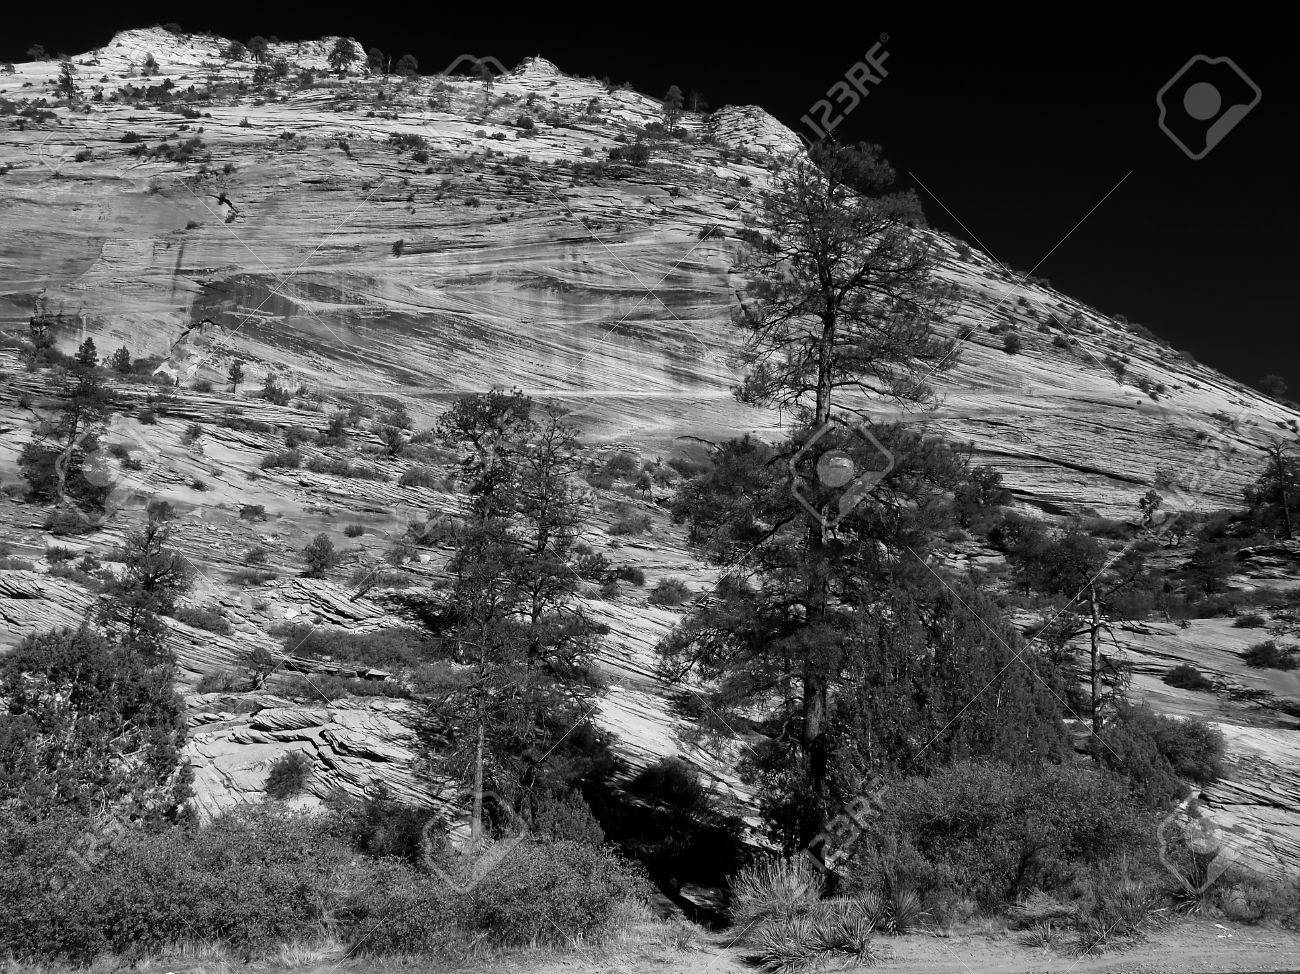 The zion national park in utah usa in black and white stock photo 1483326